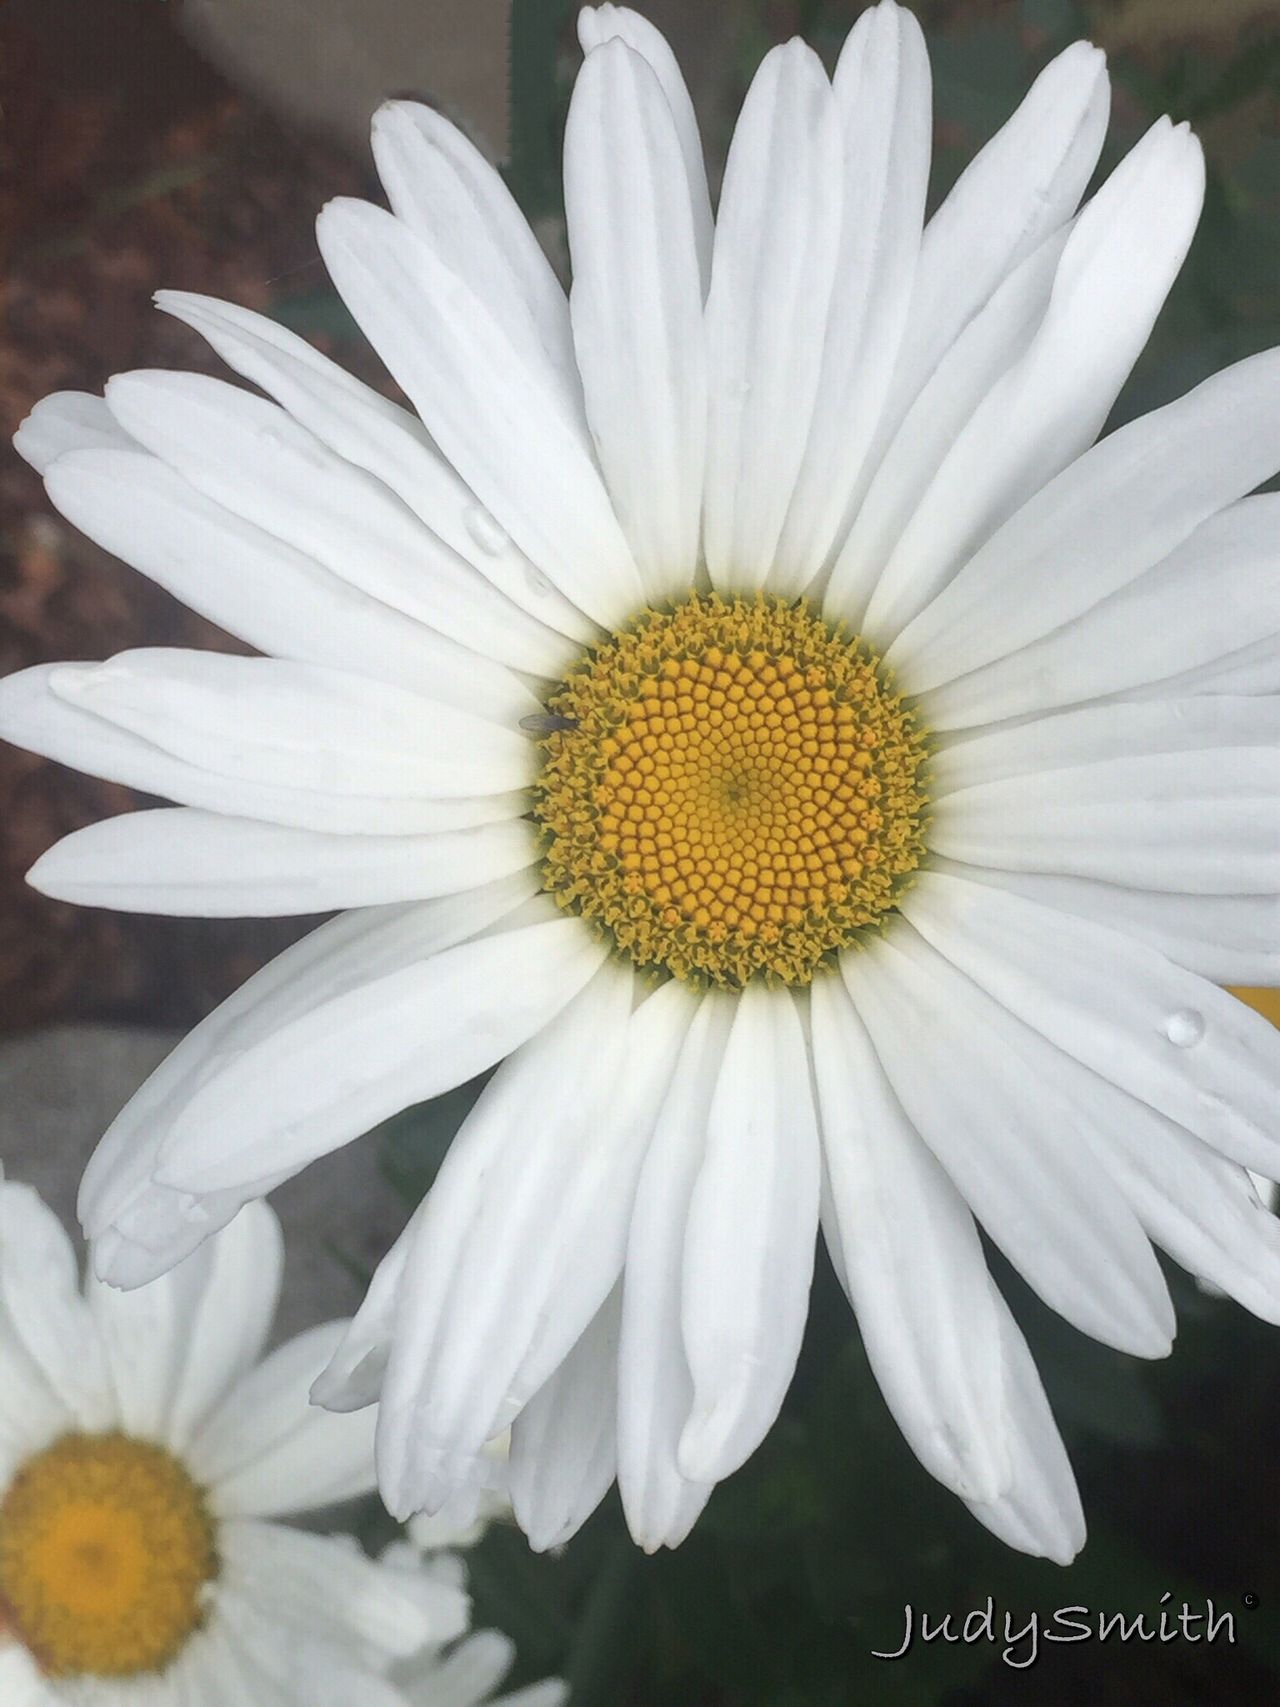 Can't stop taking photos of daisies! Taking Photos Iphonephotography Eye4photography  Nature's Best Garden Photography Flowers,Plants & Garden Macro Photography Beautifulflowerseveryday